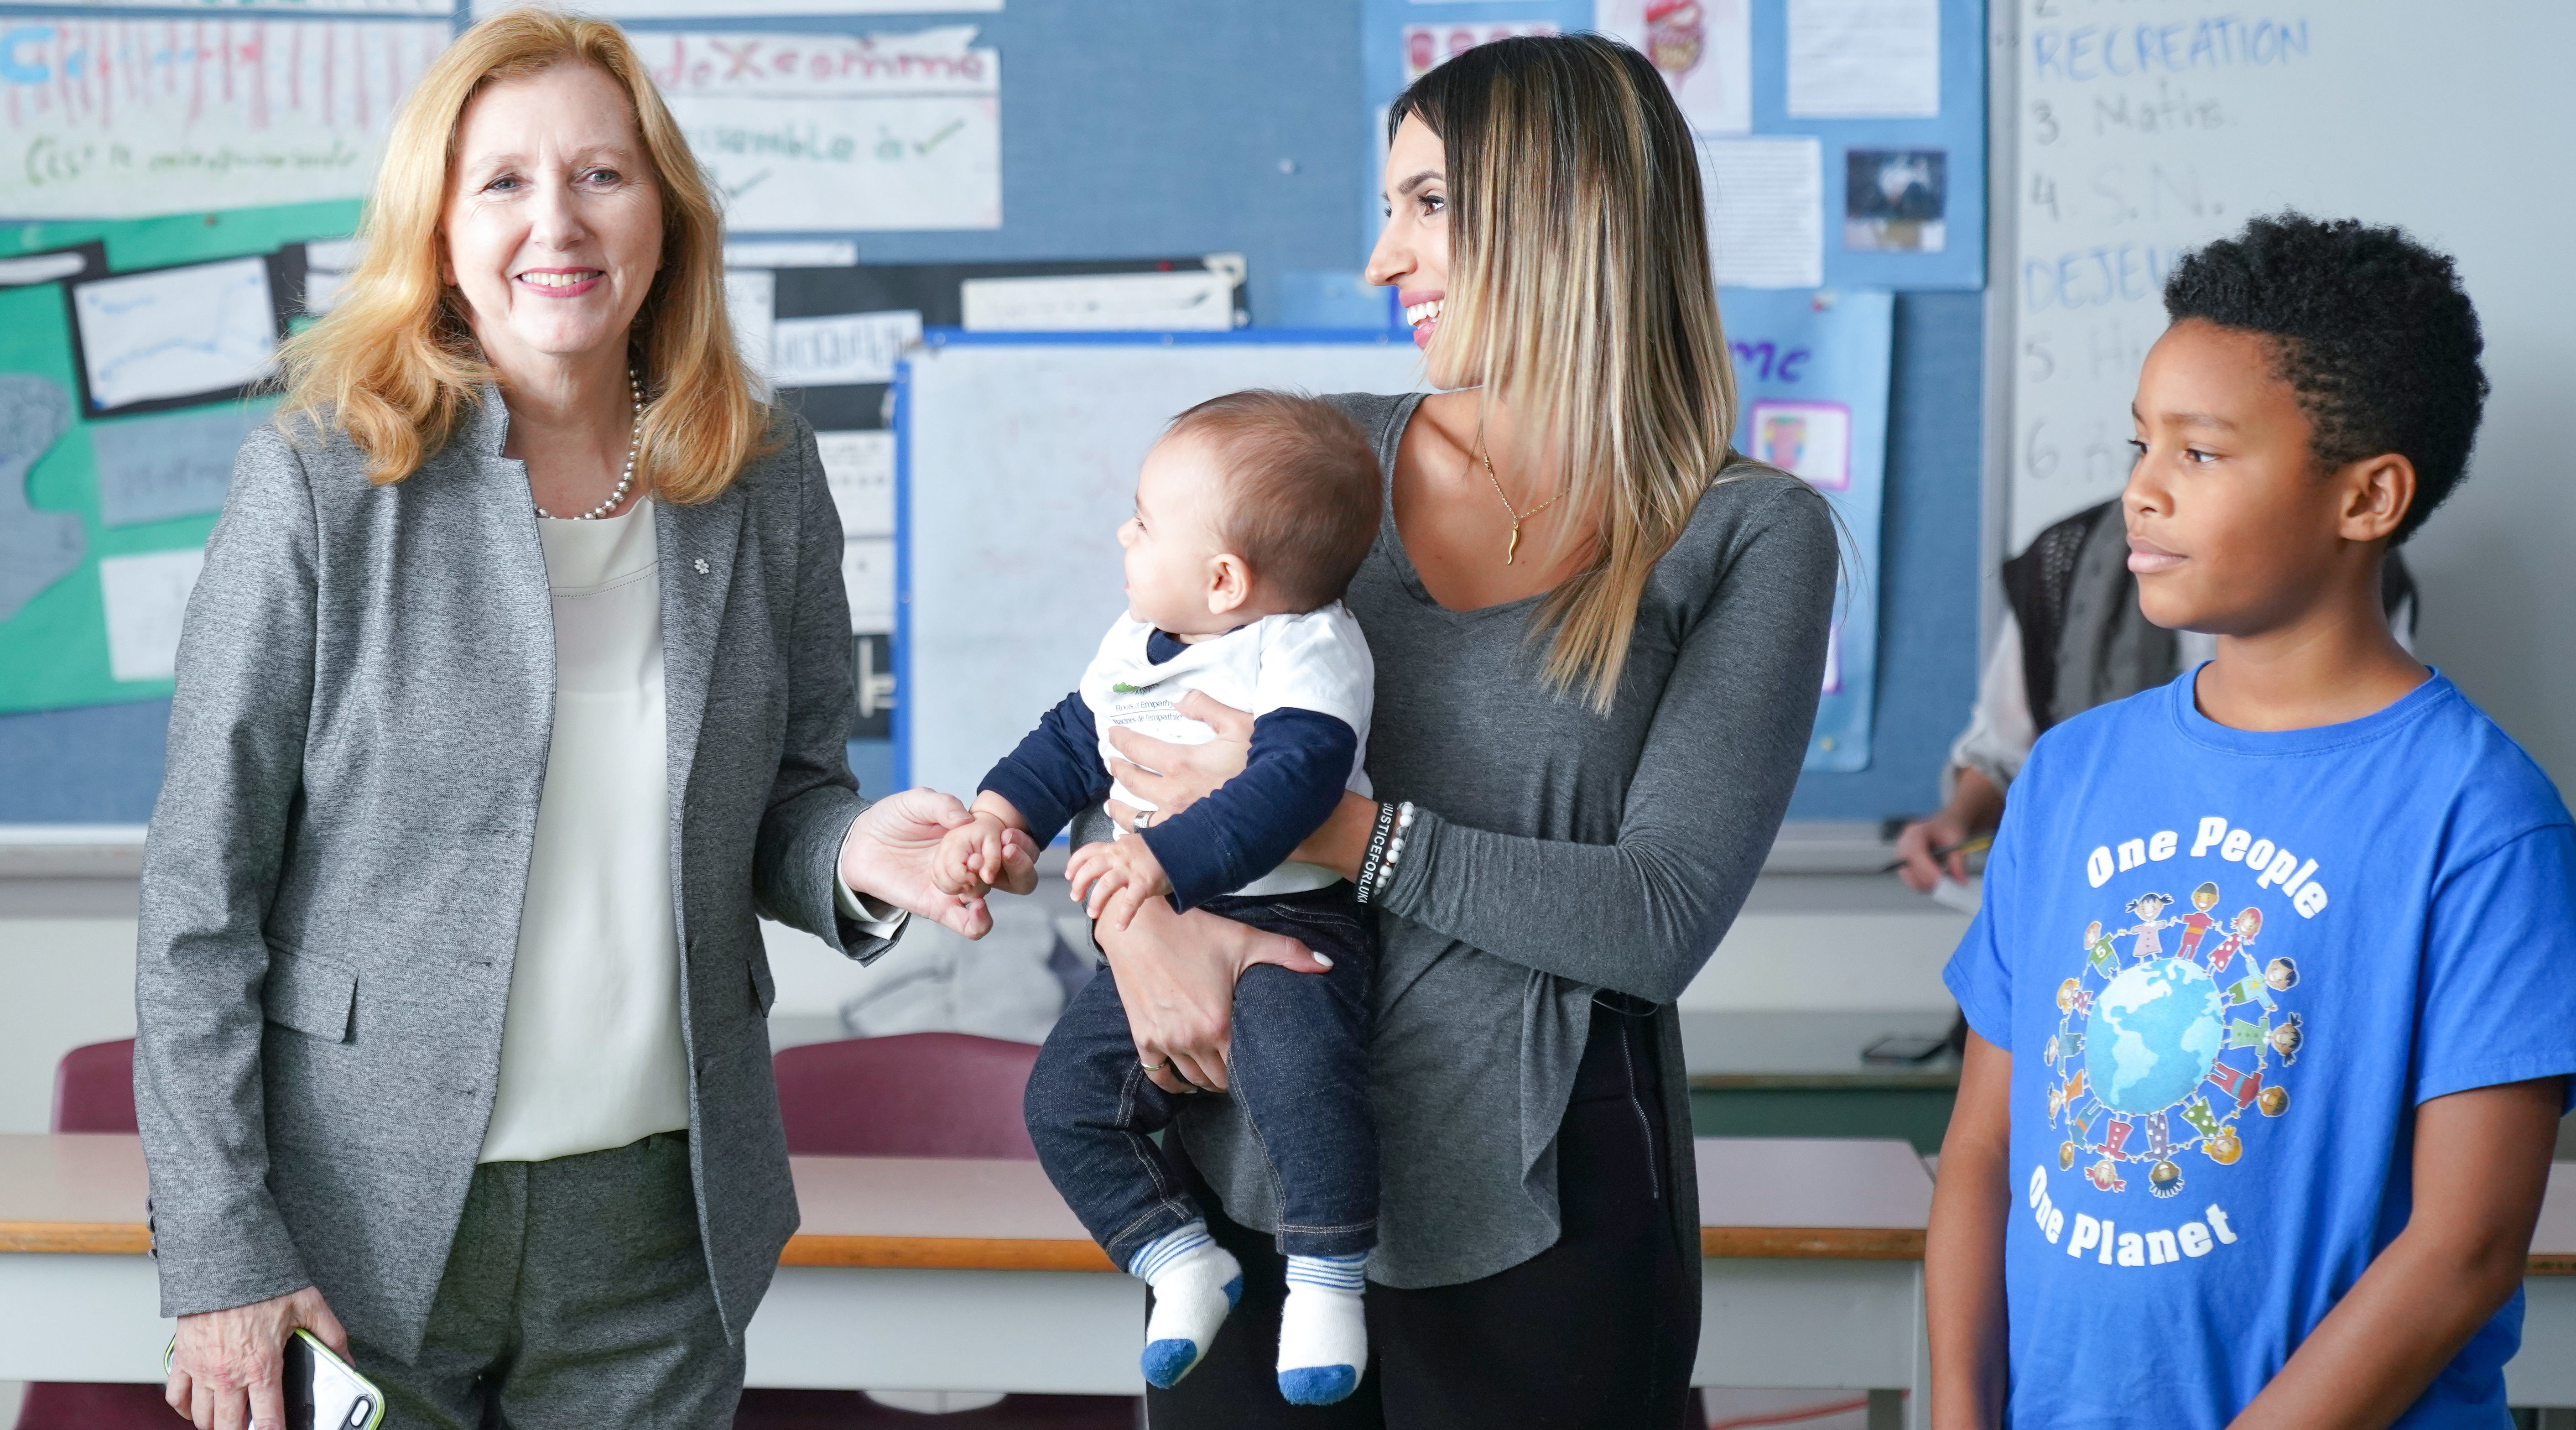 Mary Gordon, baby and mother, and a student in the classroom during a Roots of Empathy program